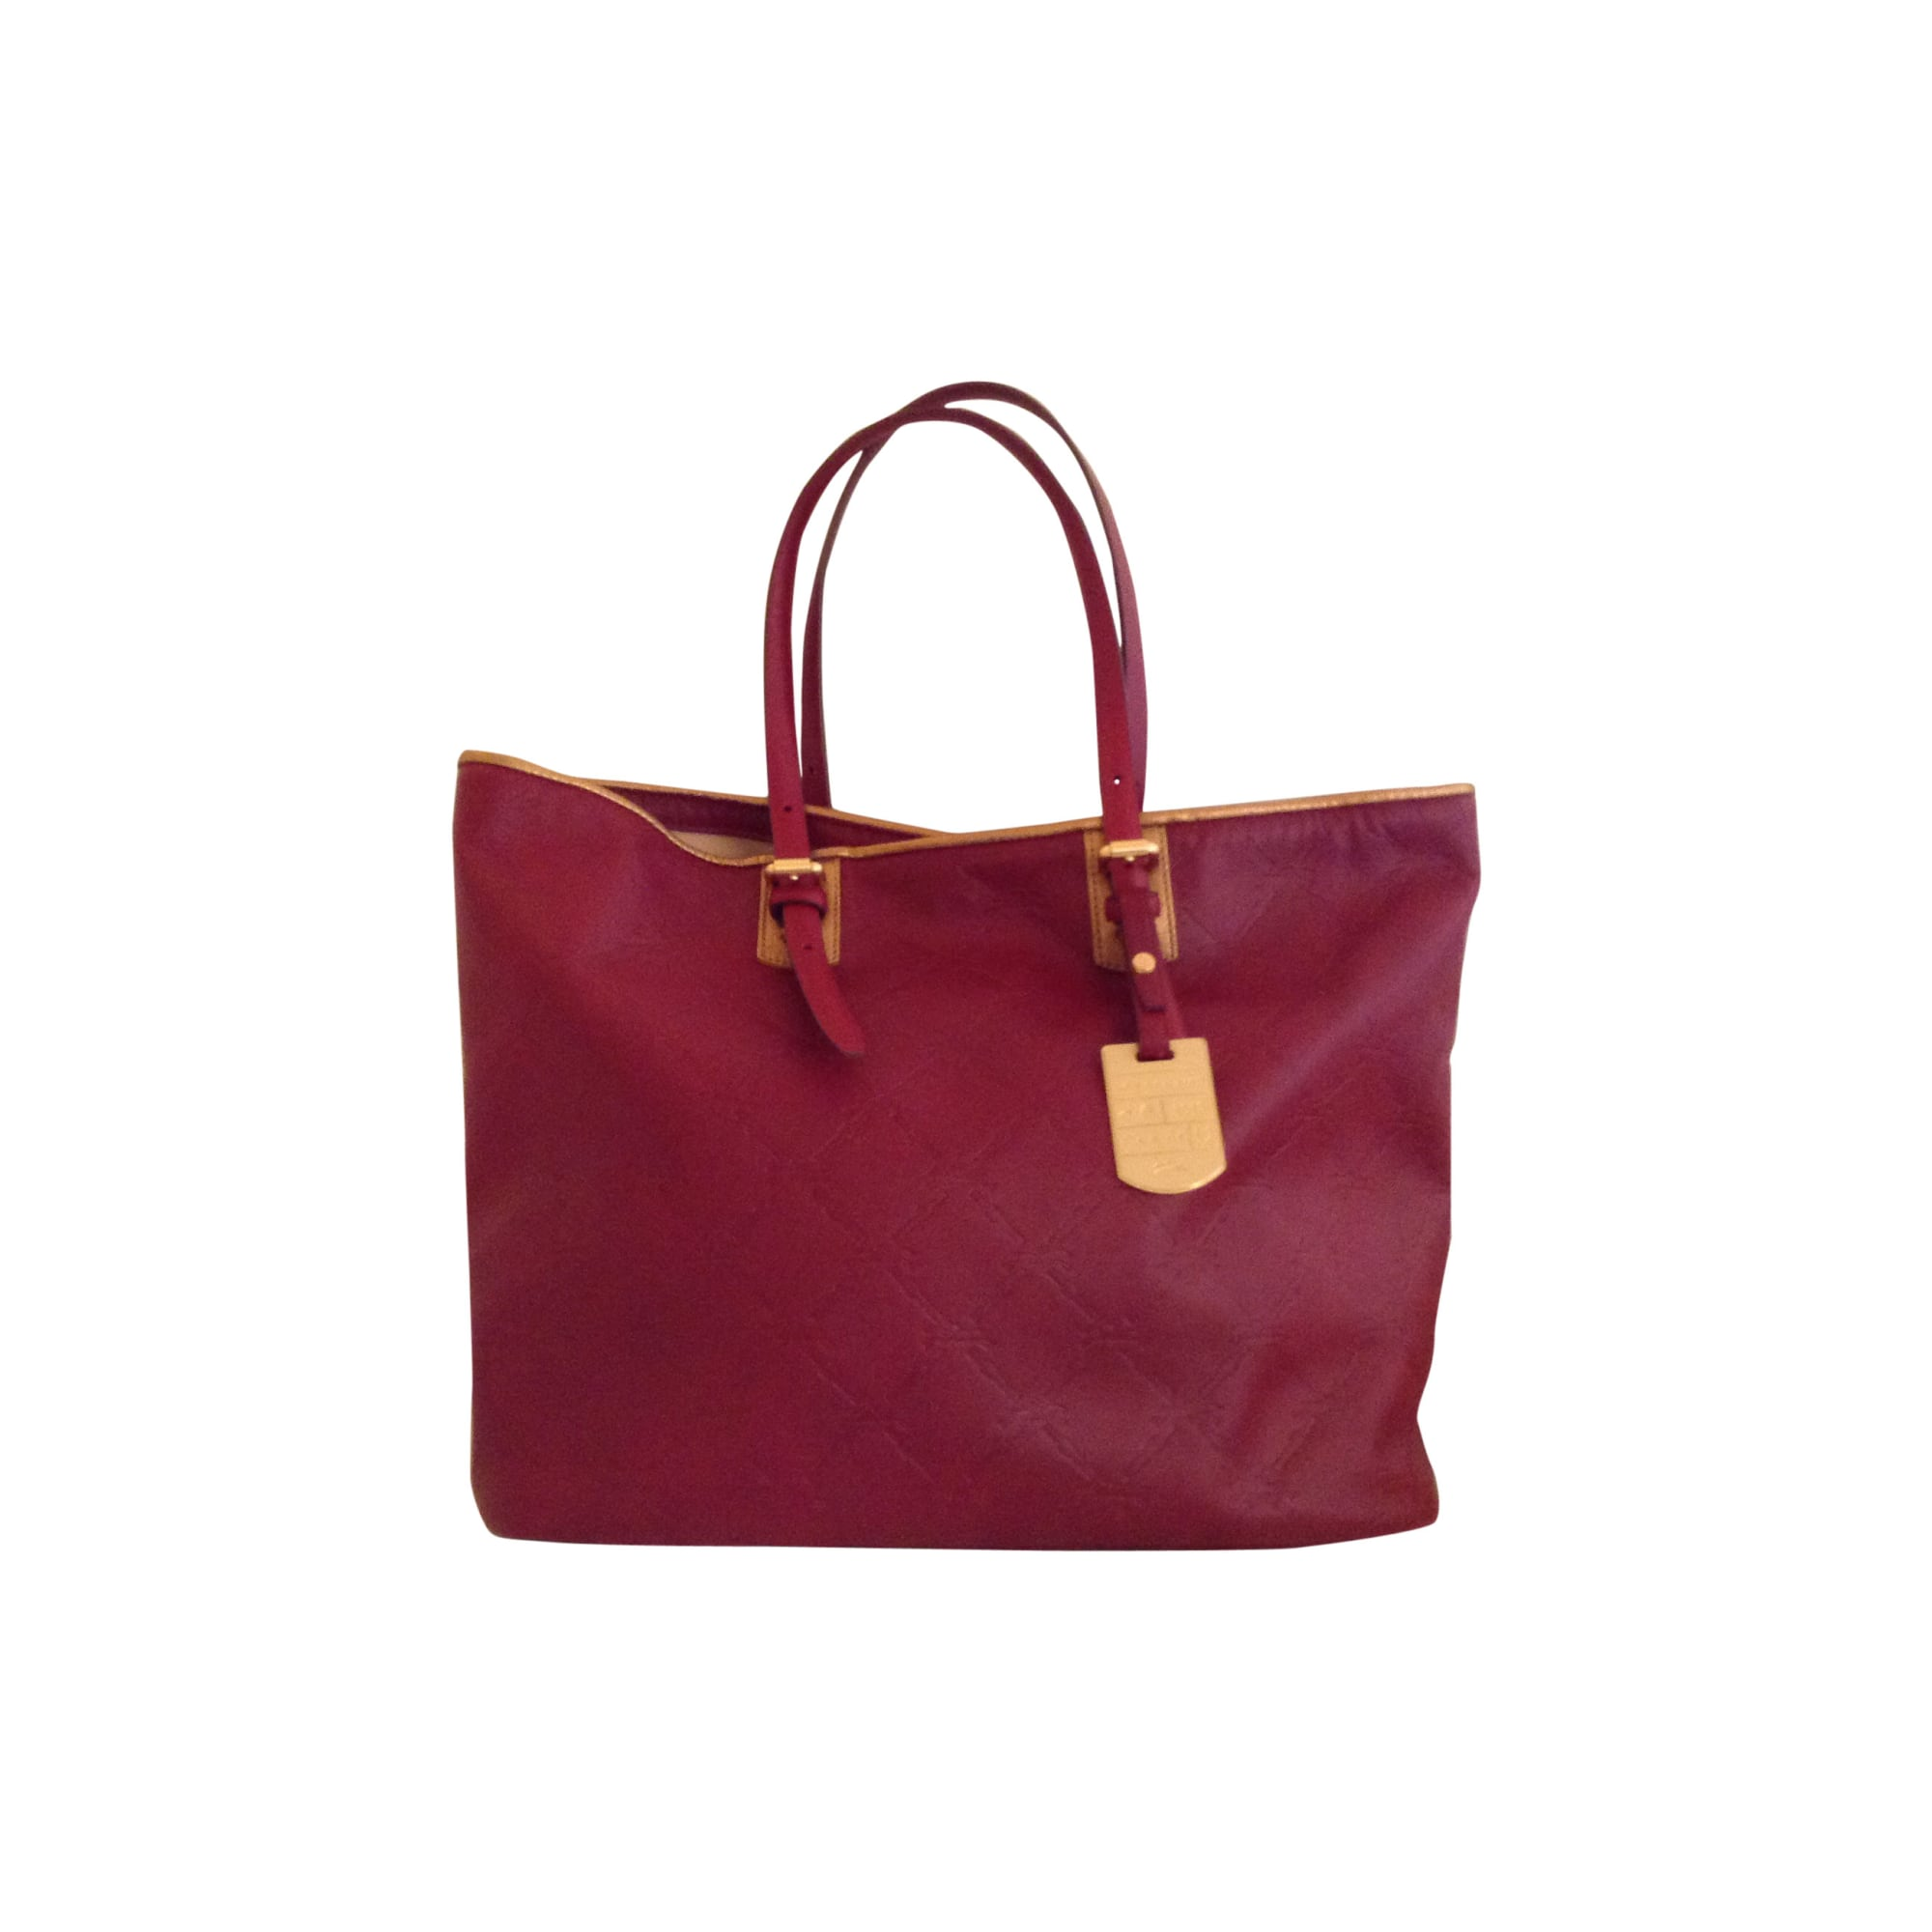 Handbag da Zoka260916 2113905 Longchamp Venduto Red Leather R7naqE1